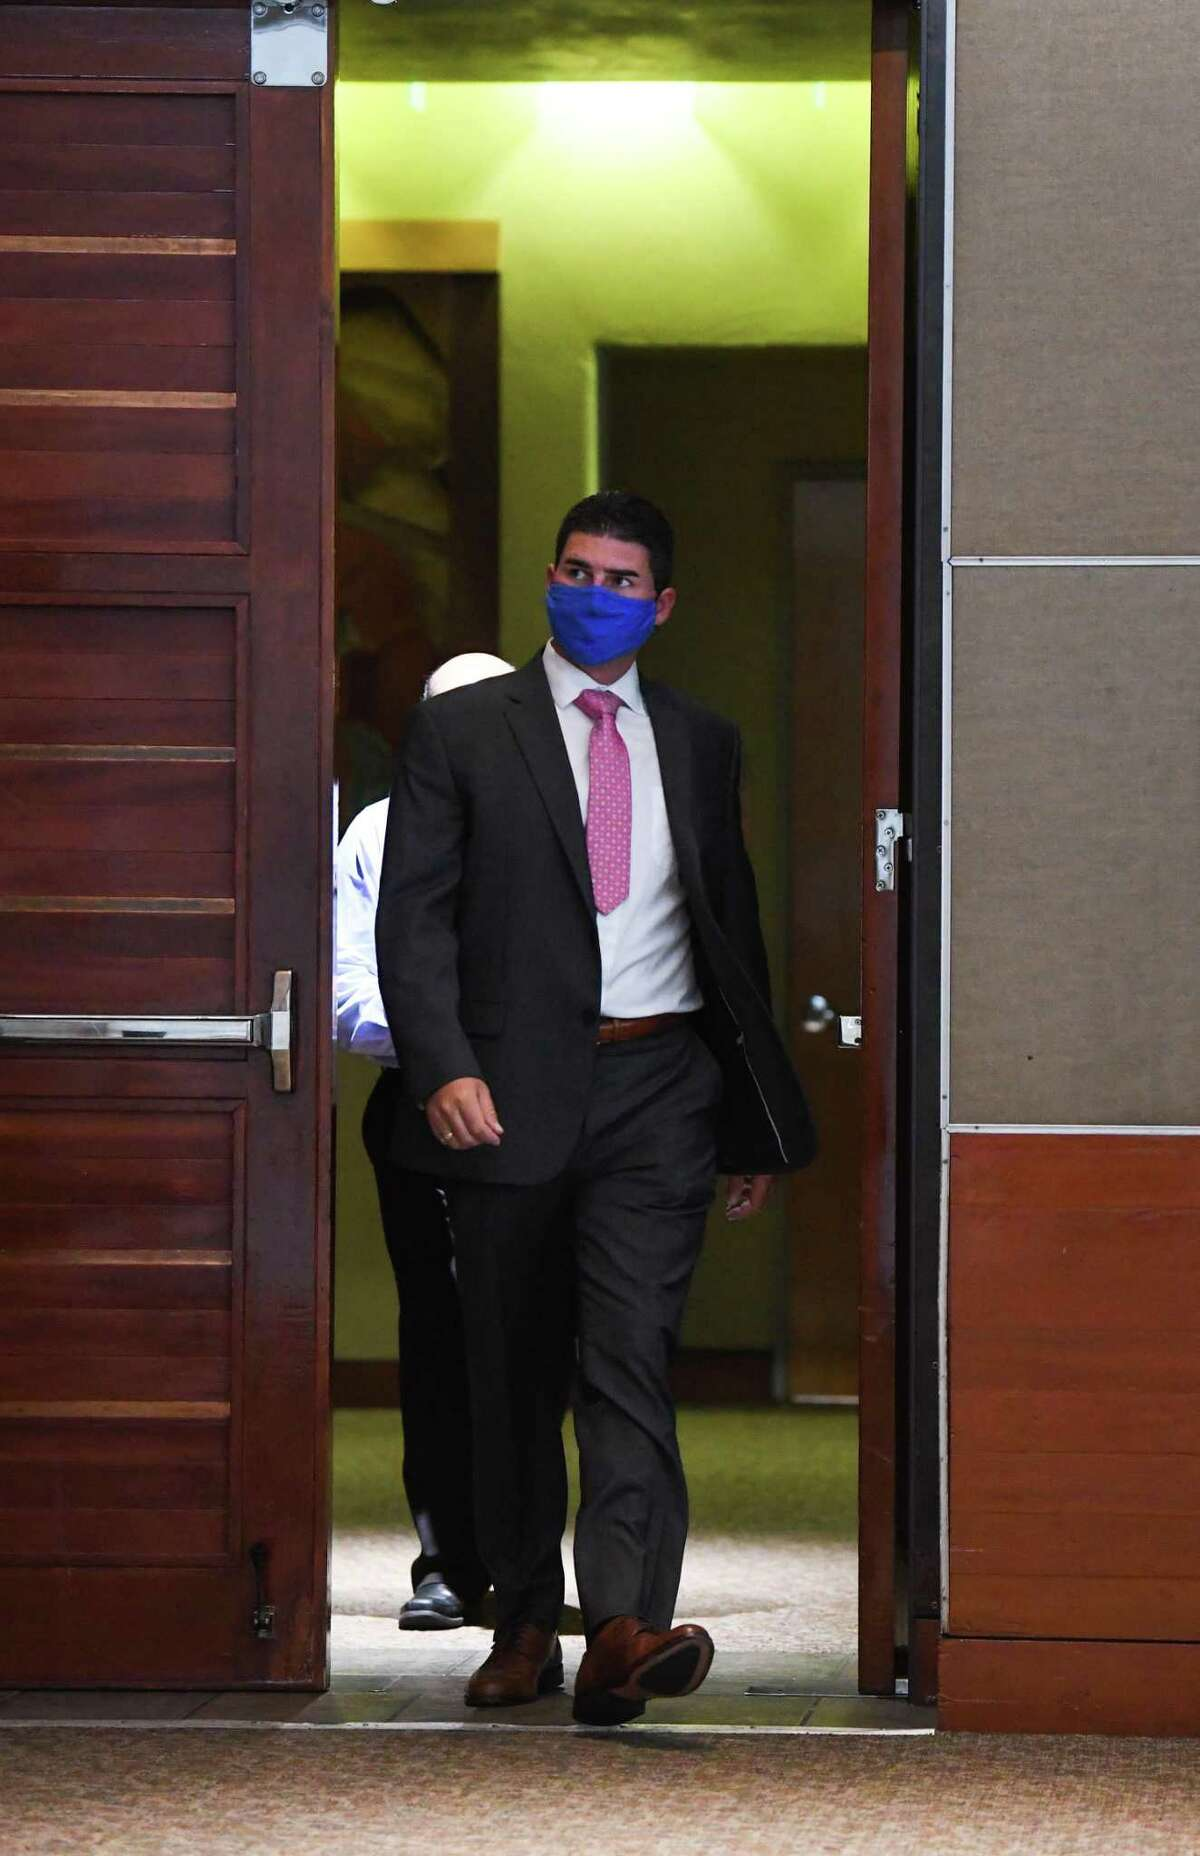 Fired San Antonio Police Detective Daniel Pue, who is accused of repeatedly punching a woman, arrives for his arbitration hearing on Thursday, Sept. 2, 2021.